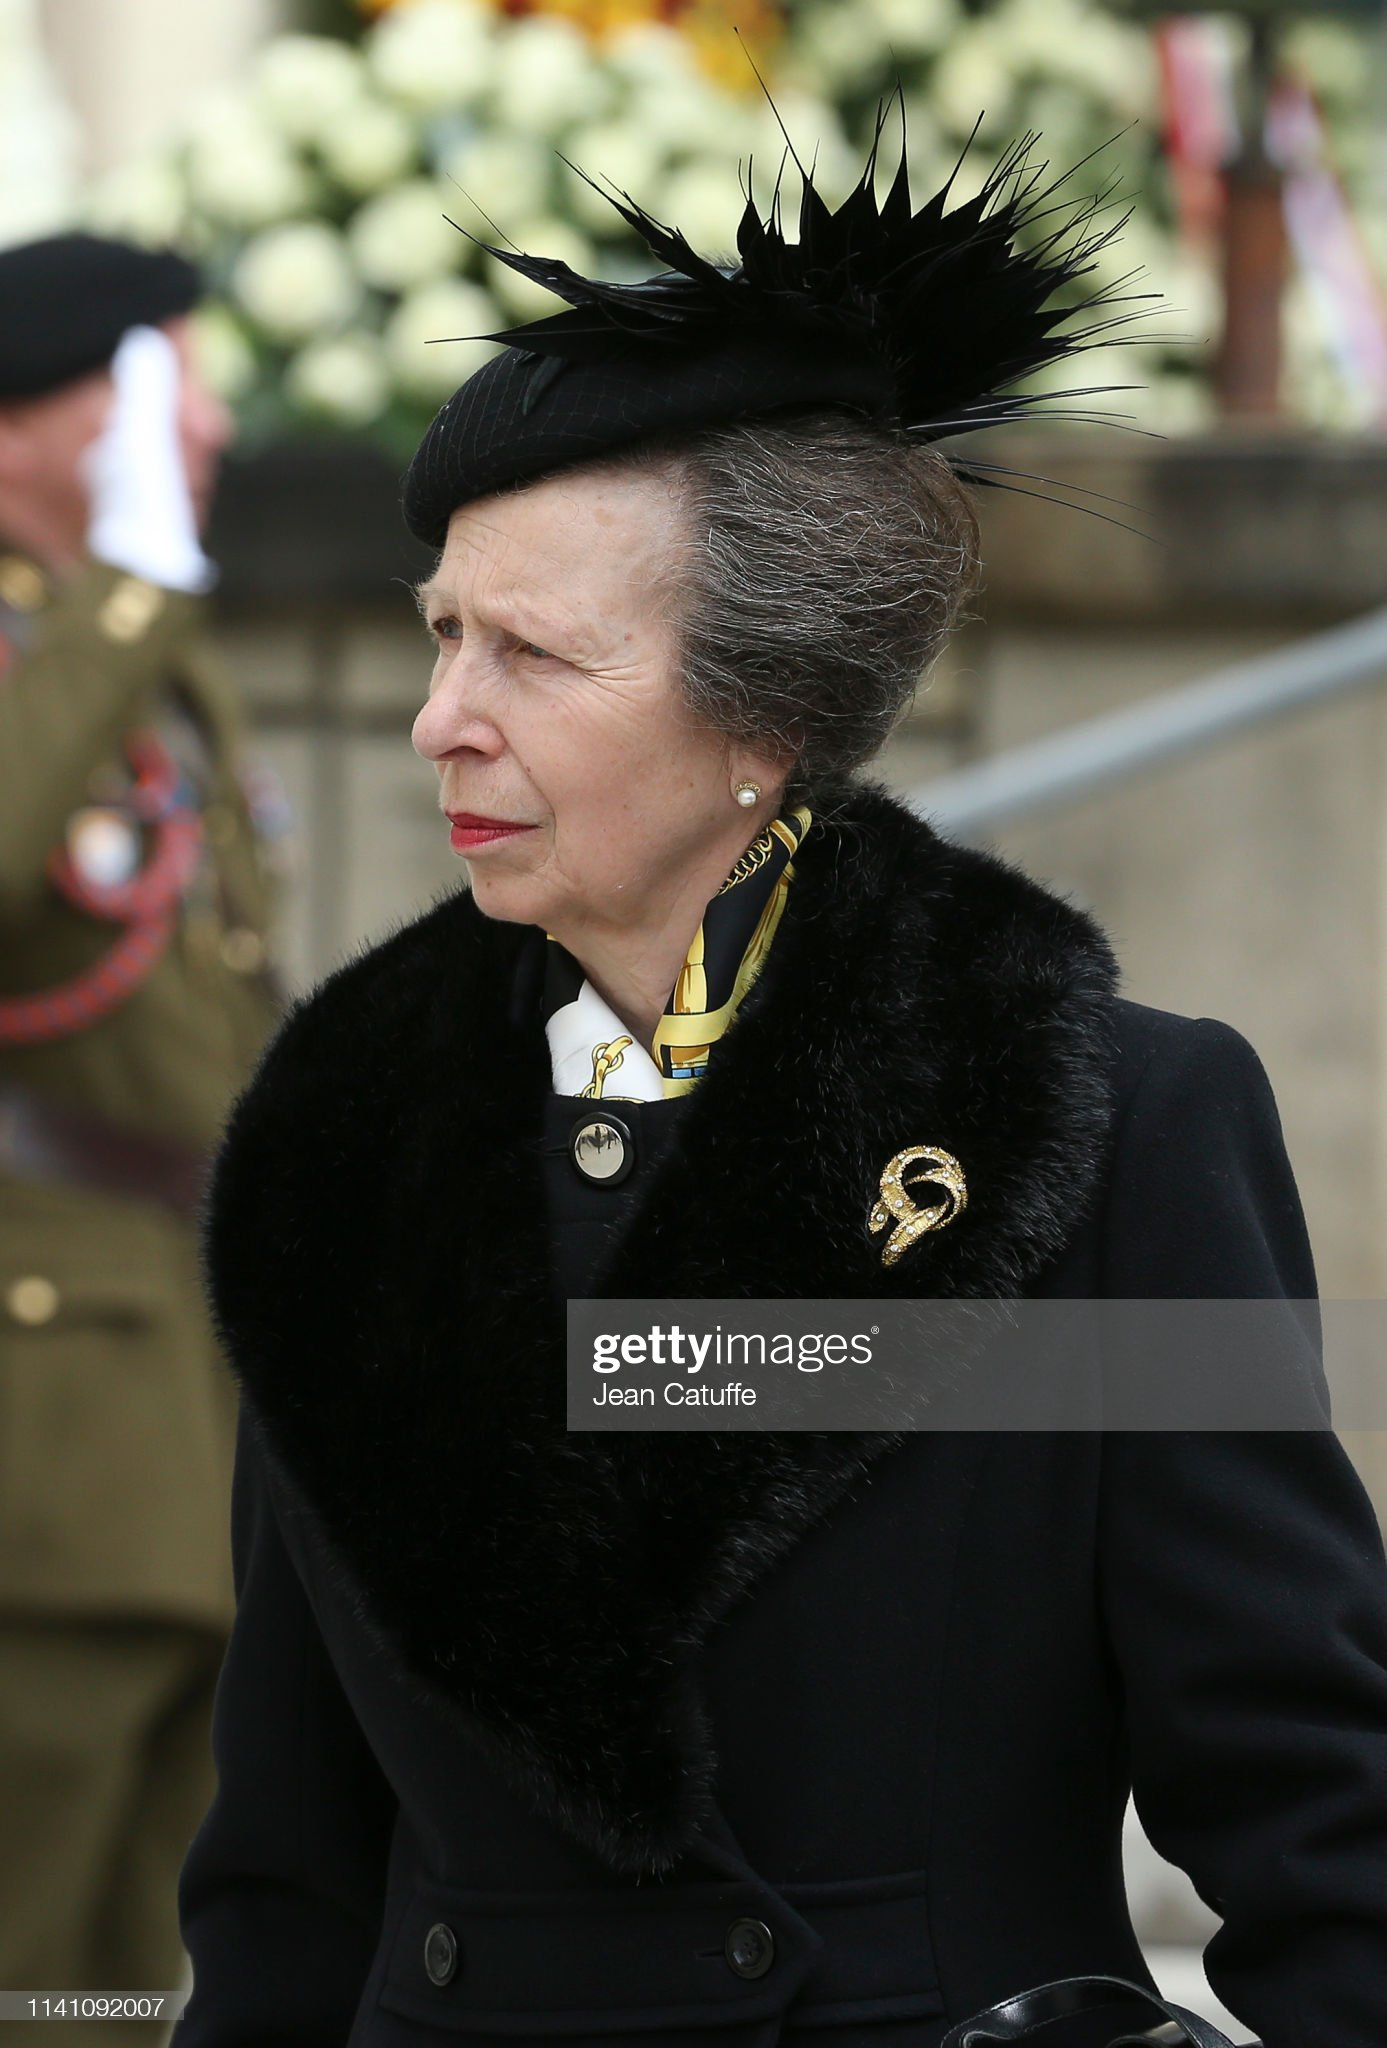 Похороны Великого Герцога Жана https://media.gettyimages.com/photos/princess-anne-leaves-the-funeral-of-grand-duke-jean-of-luxembourg-at-picture-id1141092007?s=2048x2048